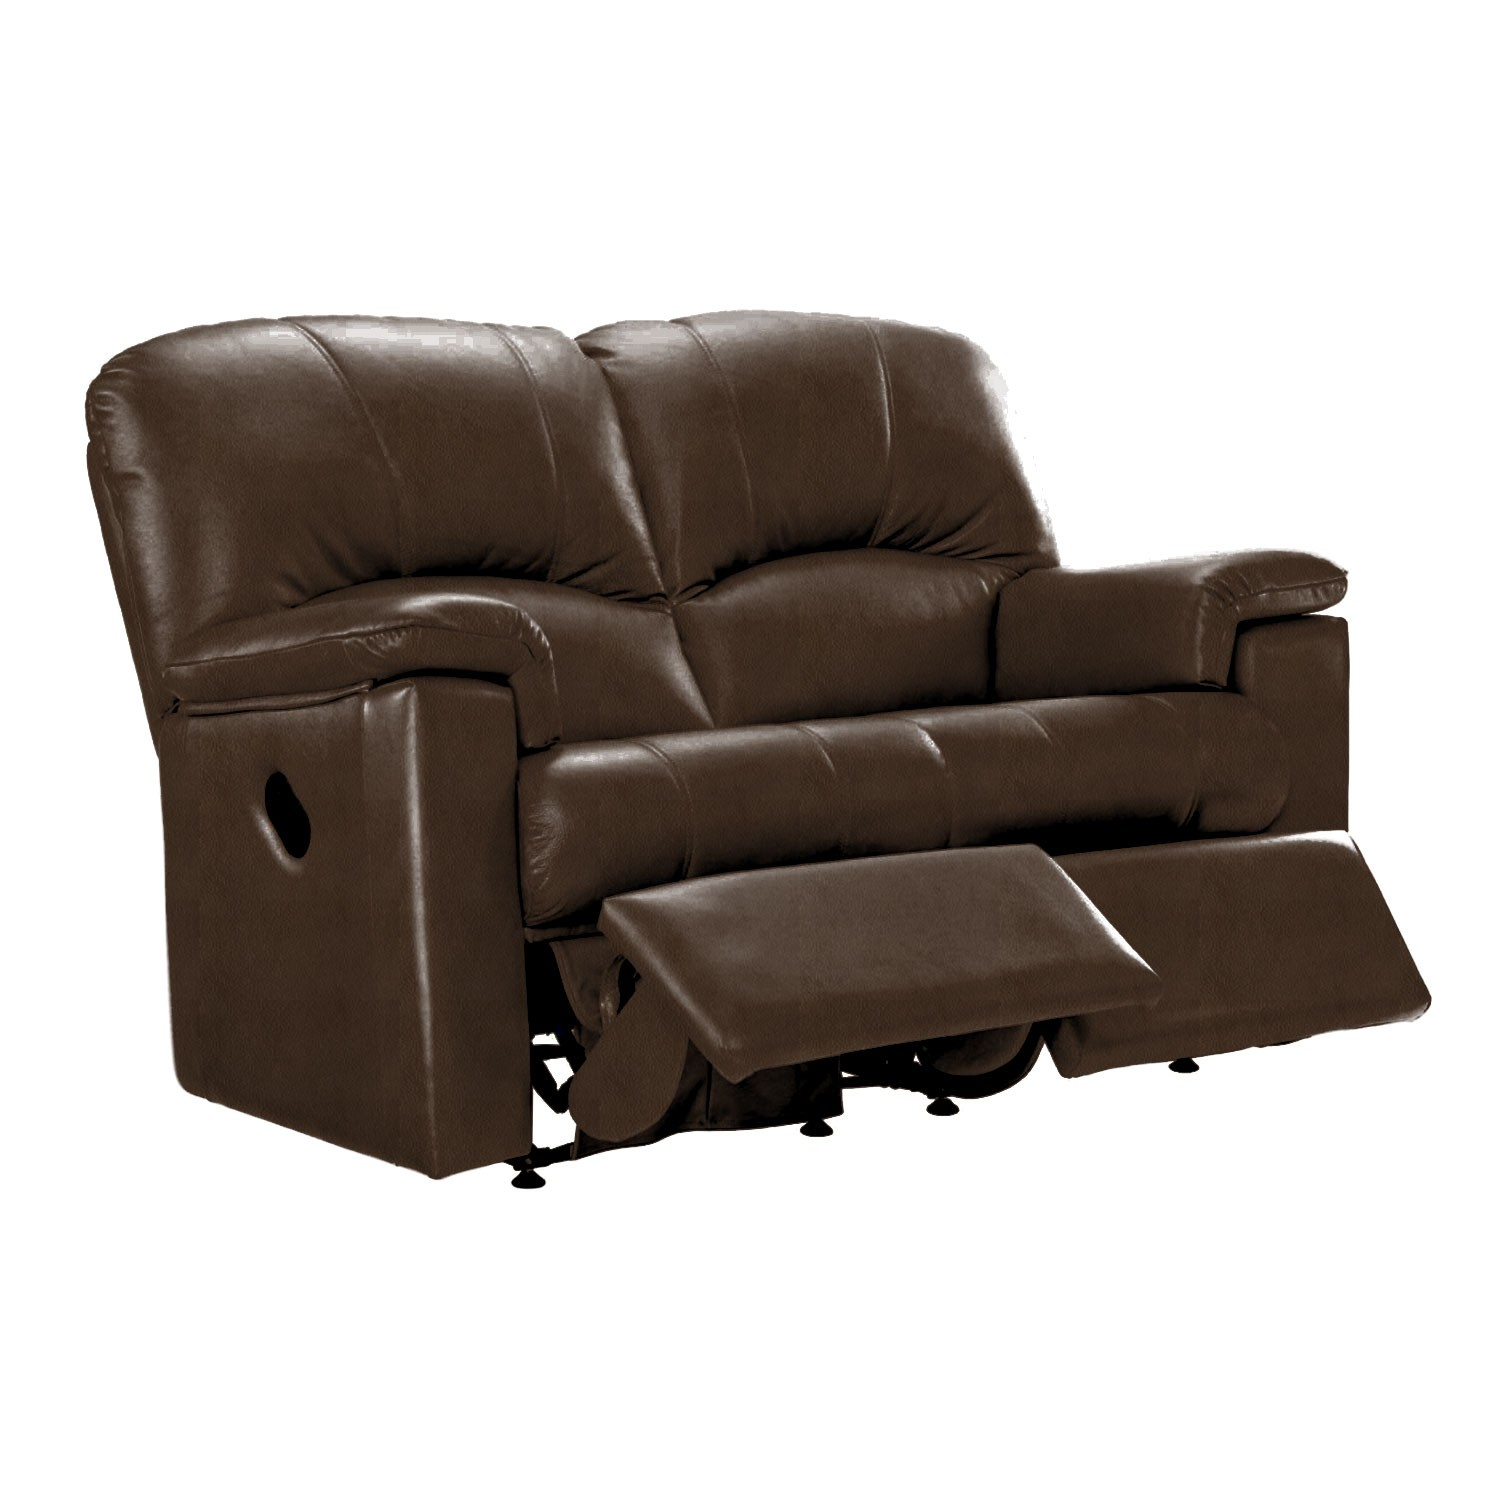 G Plan Chloe 2 Seater Double Manual Recliner Leather Sofa